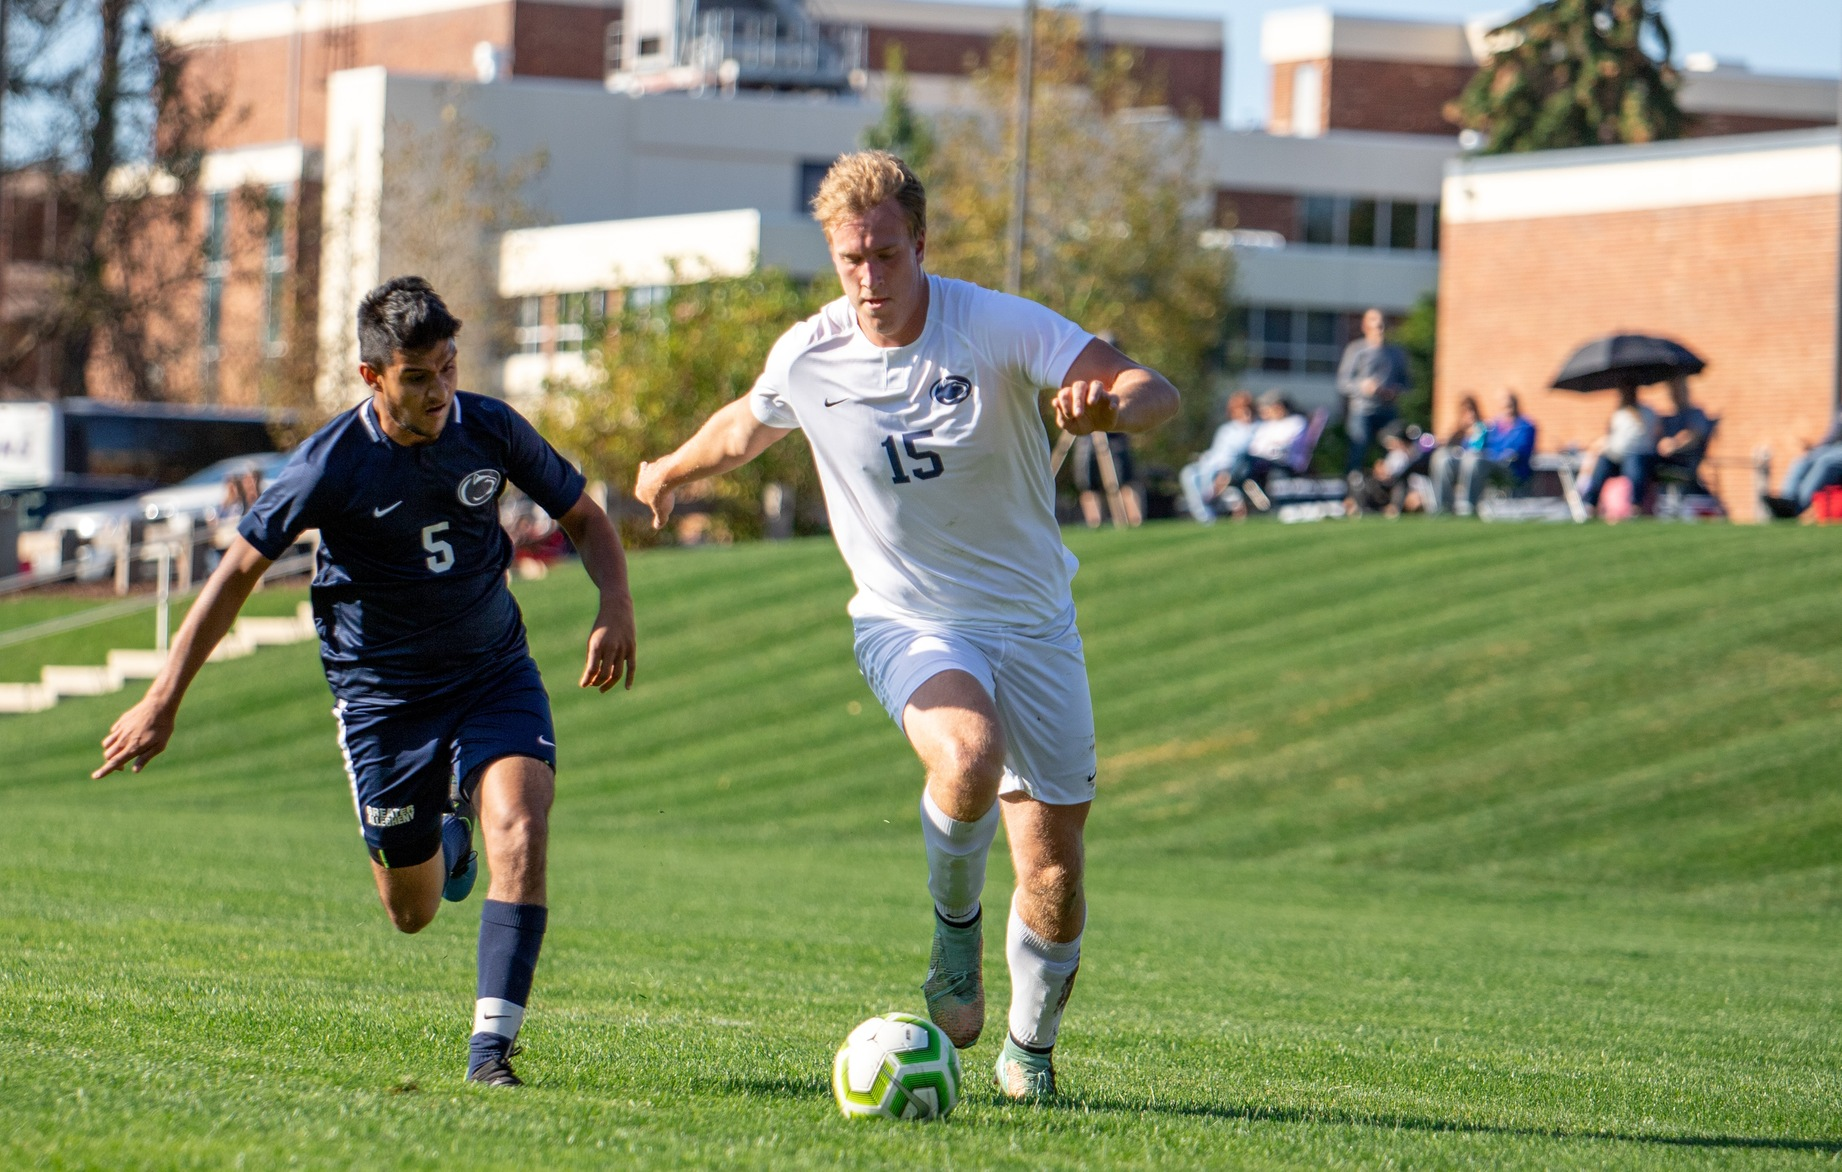 Kuczynski Hat Trick Leads Men's Soccer against Greater Allegheny